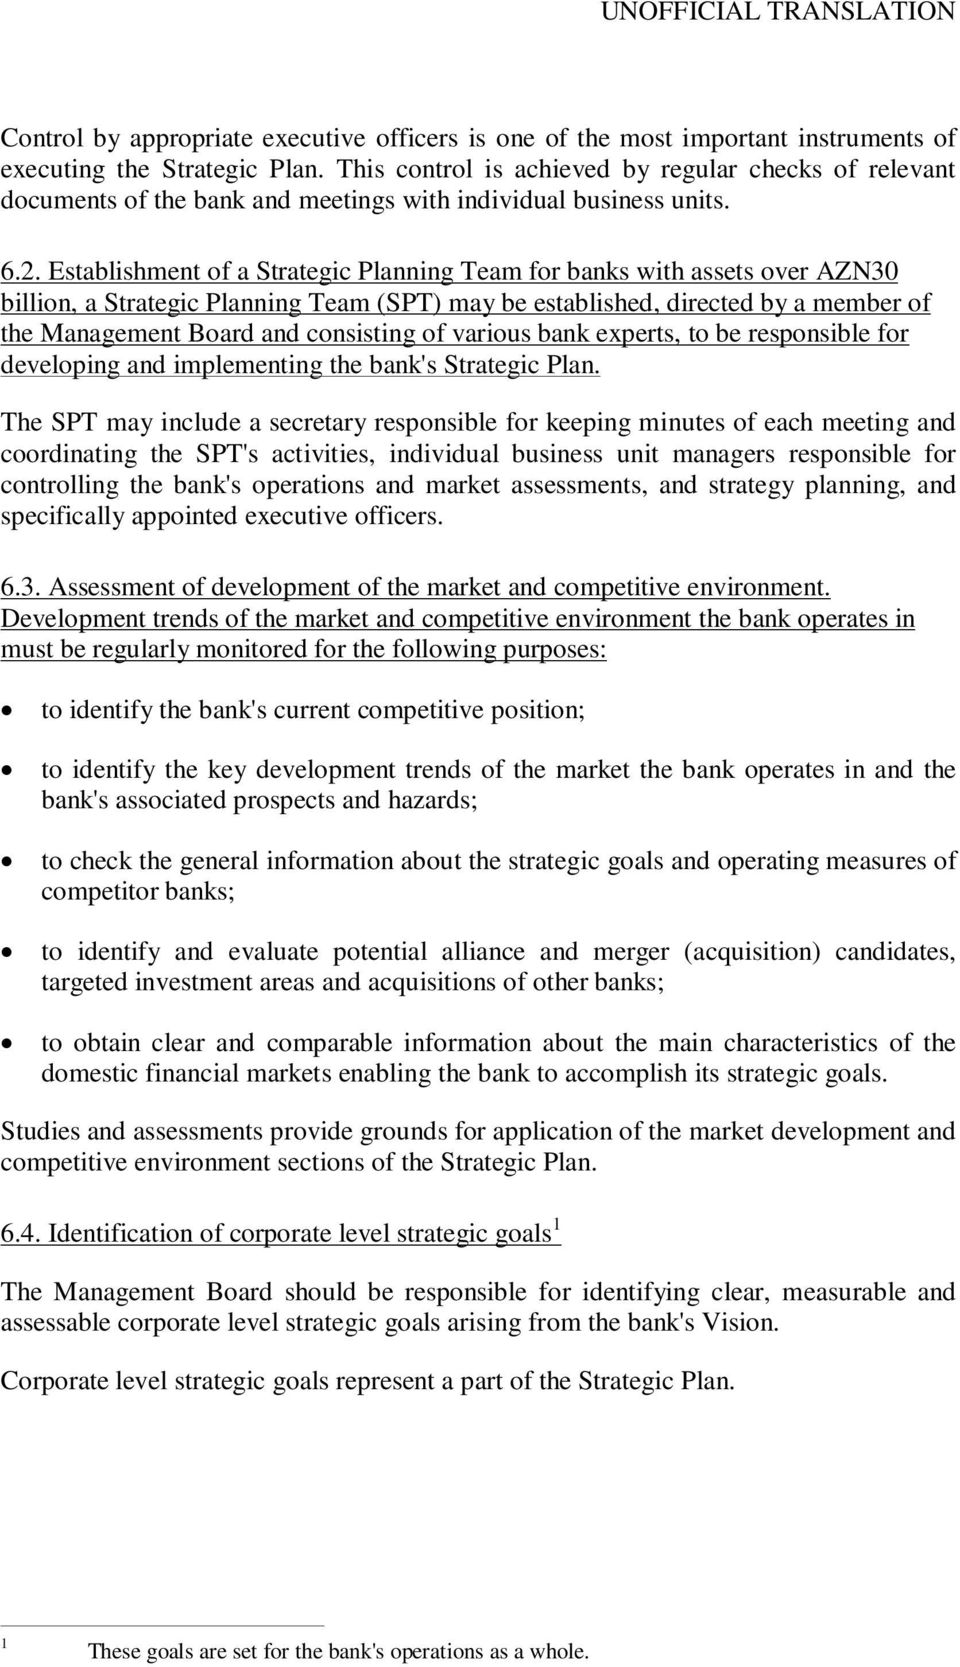 Establishment of a Strategic Planning Team for banks with assets over AZN30 billion, a Strategic Planning Team (SPT) may be established, directed by a member of the Management Board and consisting of